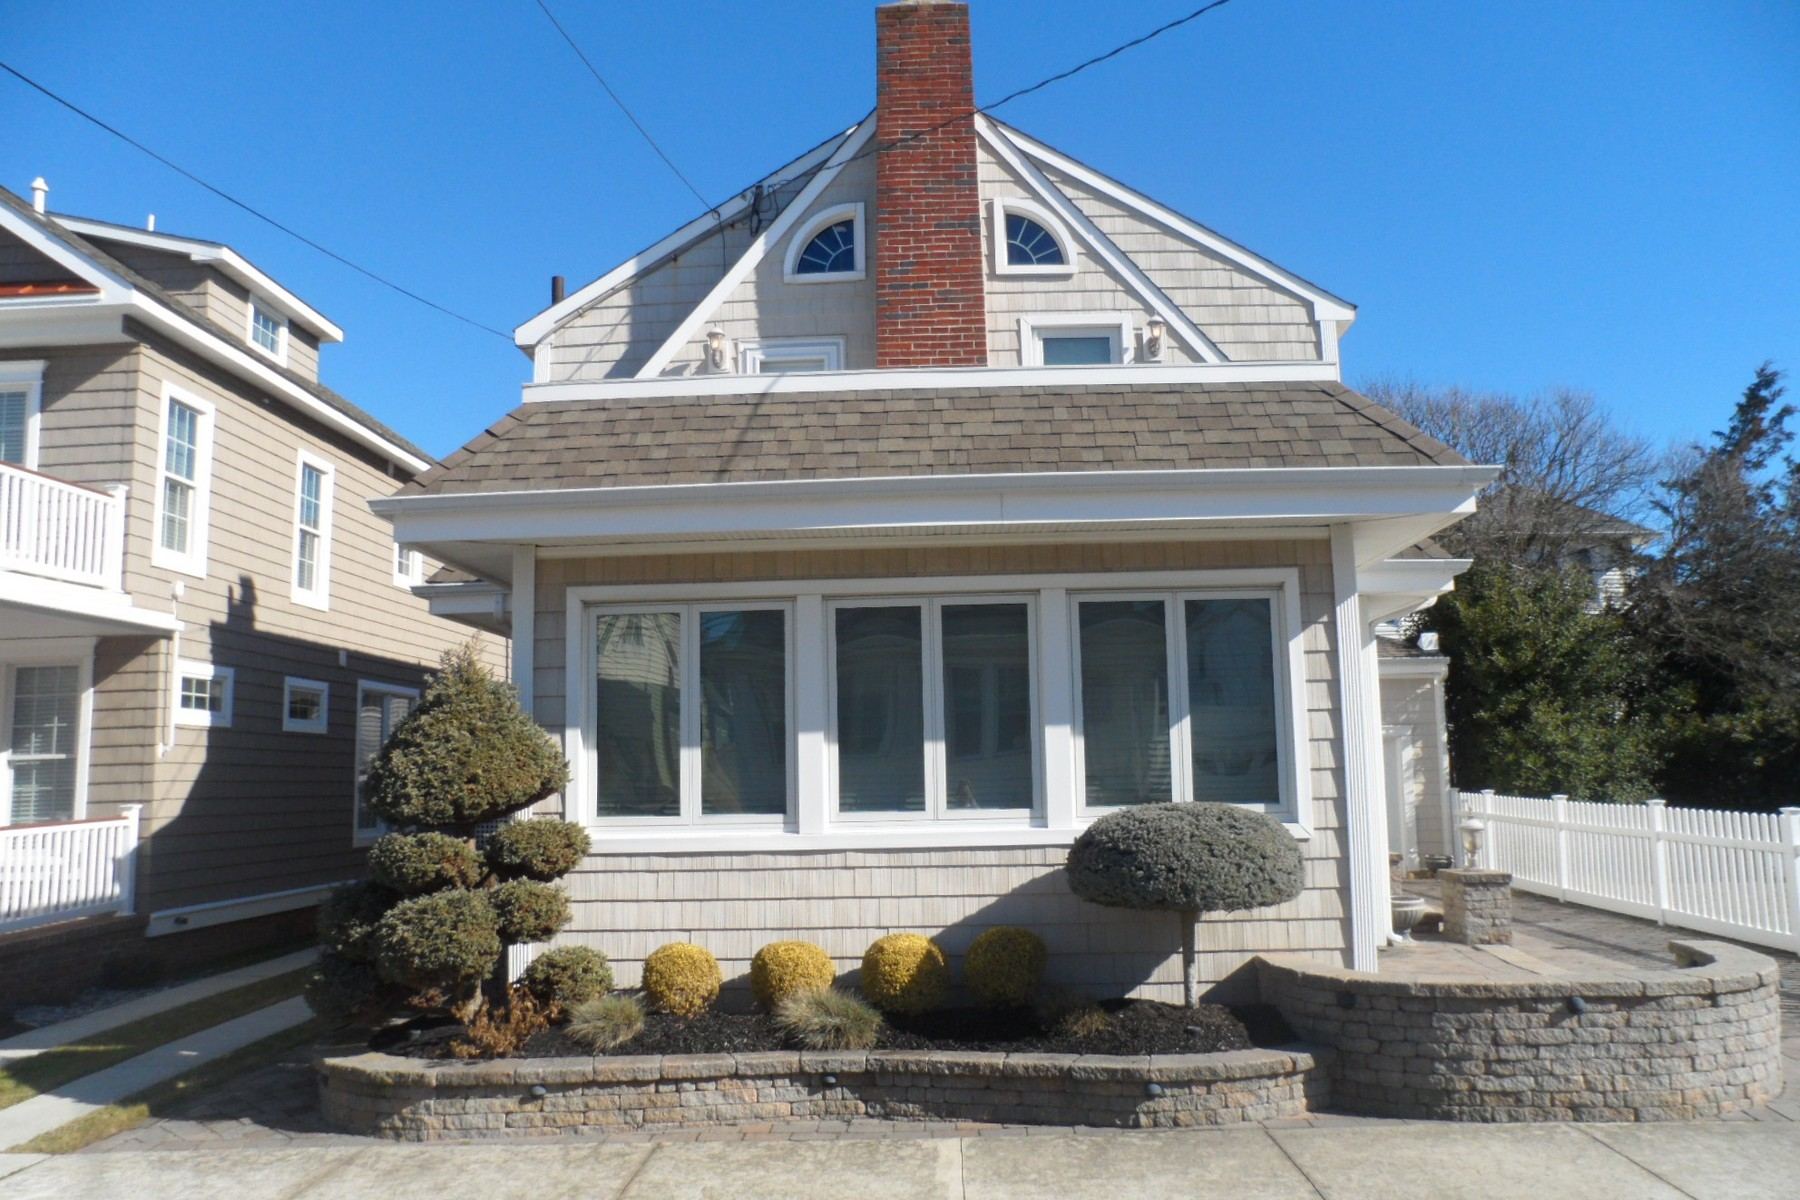 Property For Sale at 15 S Barclay Ave